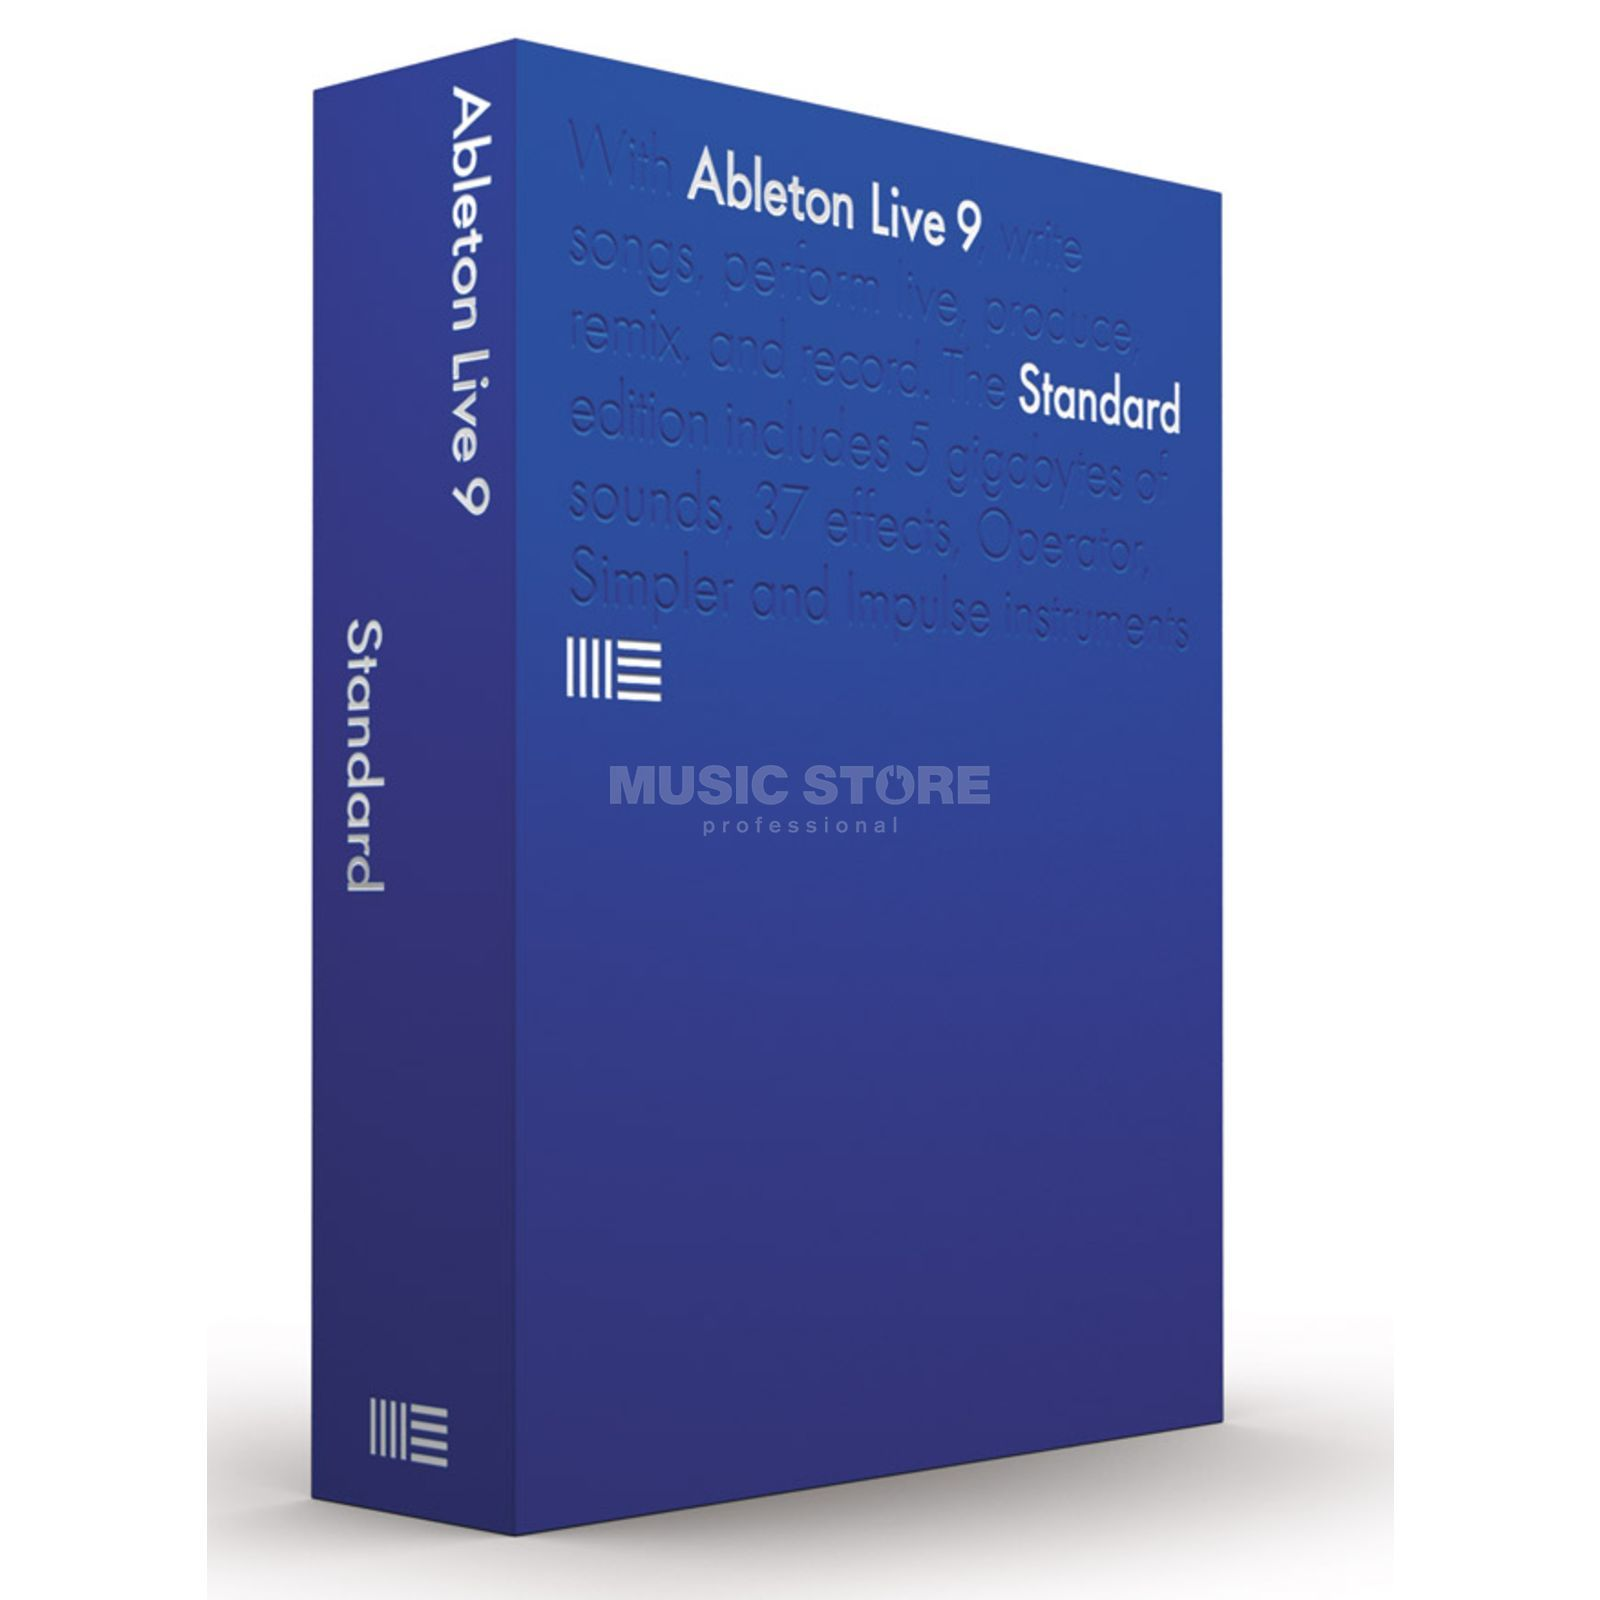 Ableton LIVE 9 Standard EDU deutsch Boxed Version Produktbild